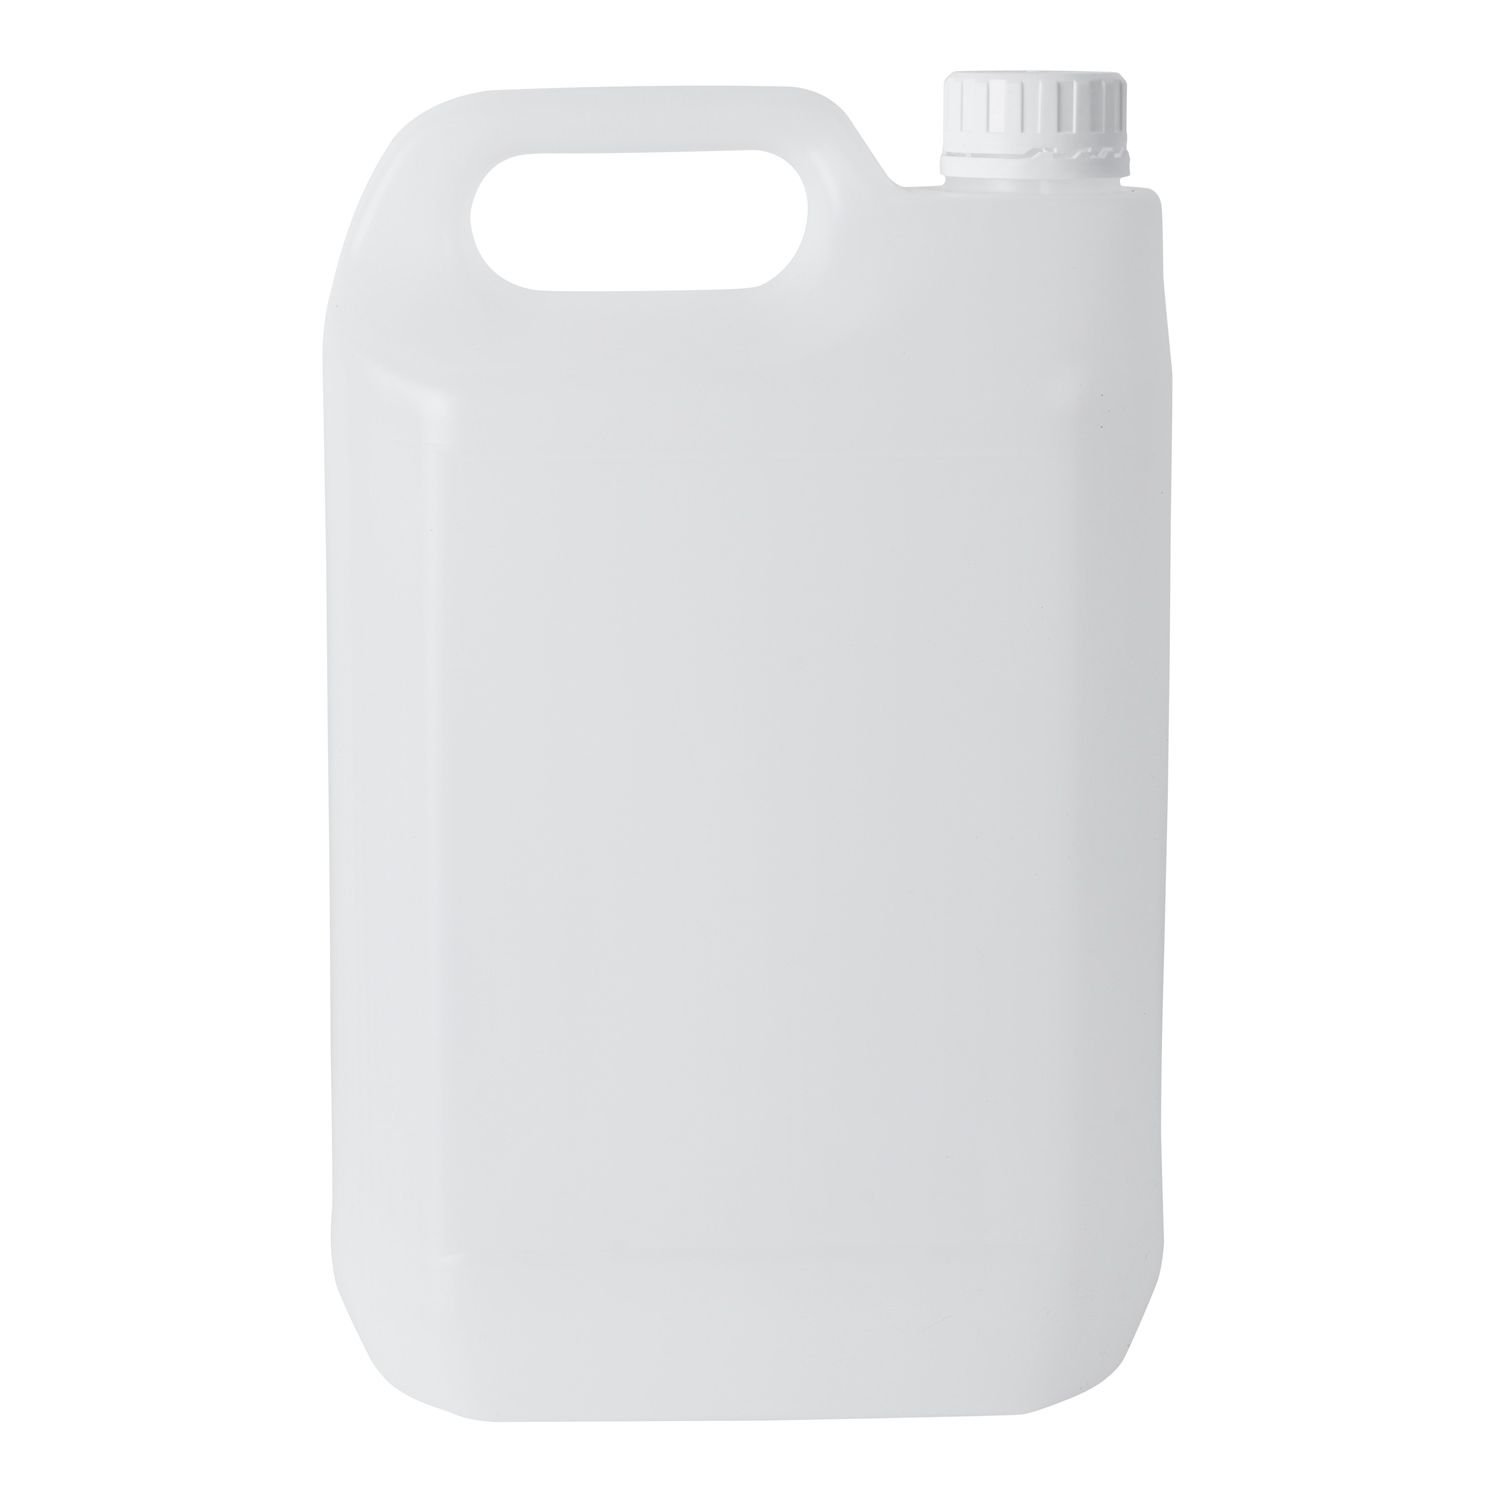 5 Litre Plastic Jerry Can With Tamper Evident Cap